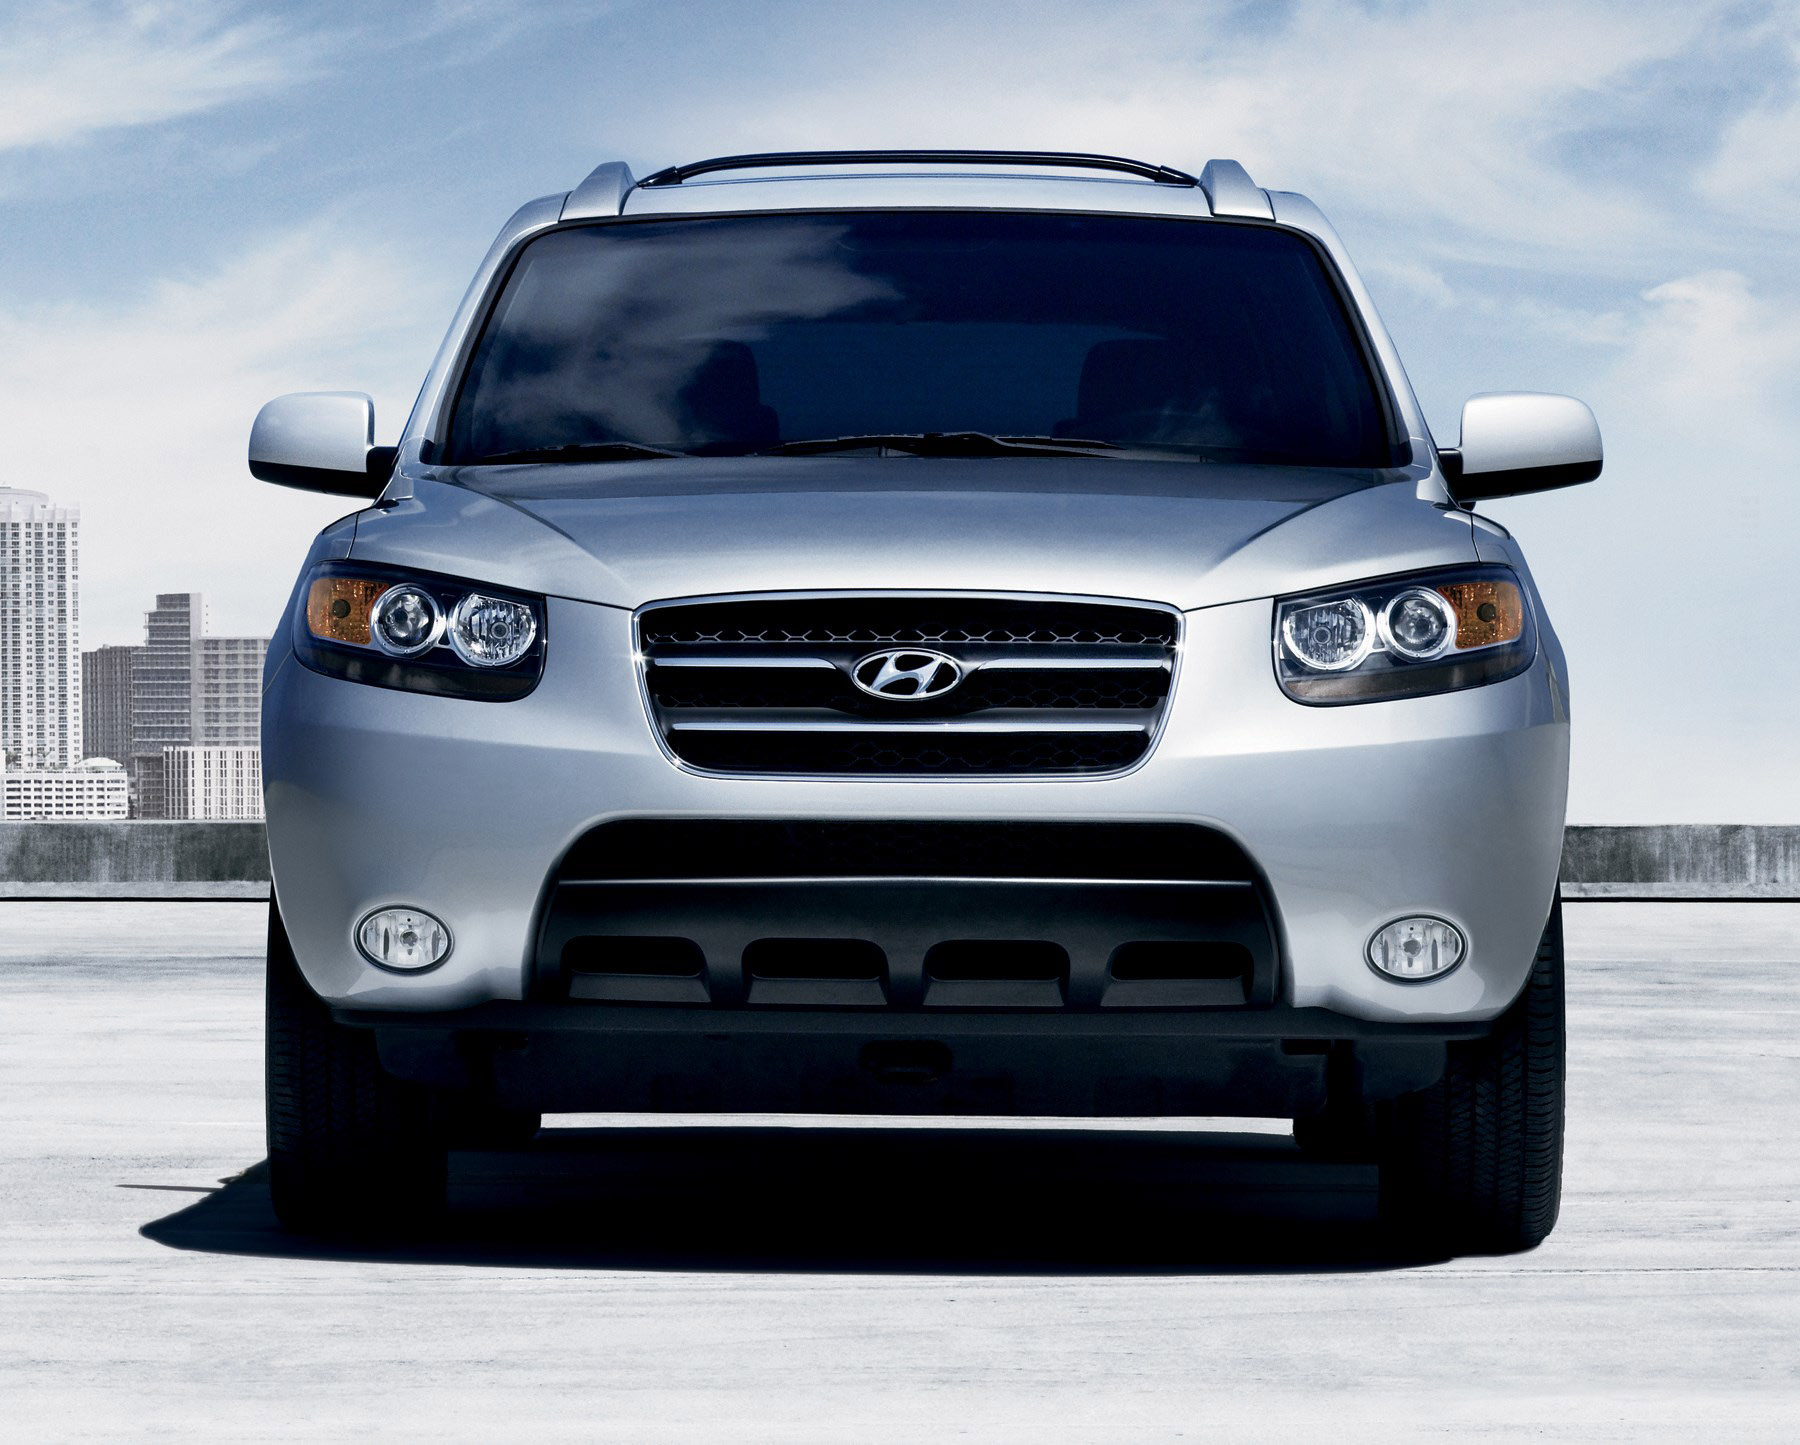 2007 hyundai santa fe hd pictures. Black Bedroom Furniture Sets. Home Design Ideas